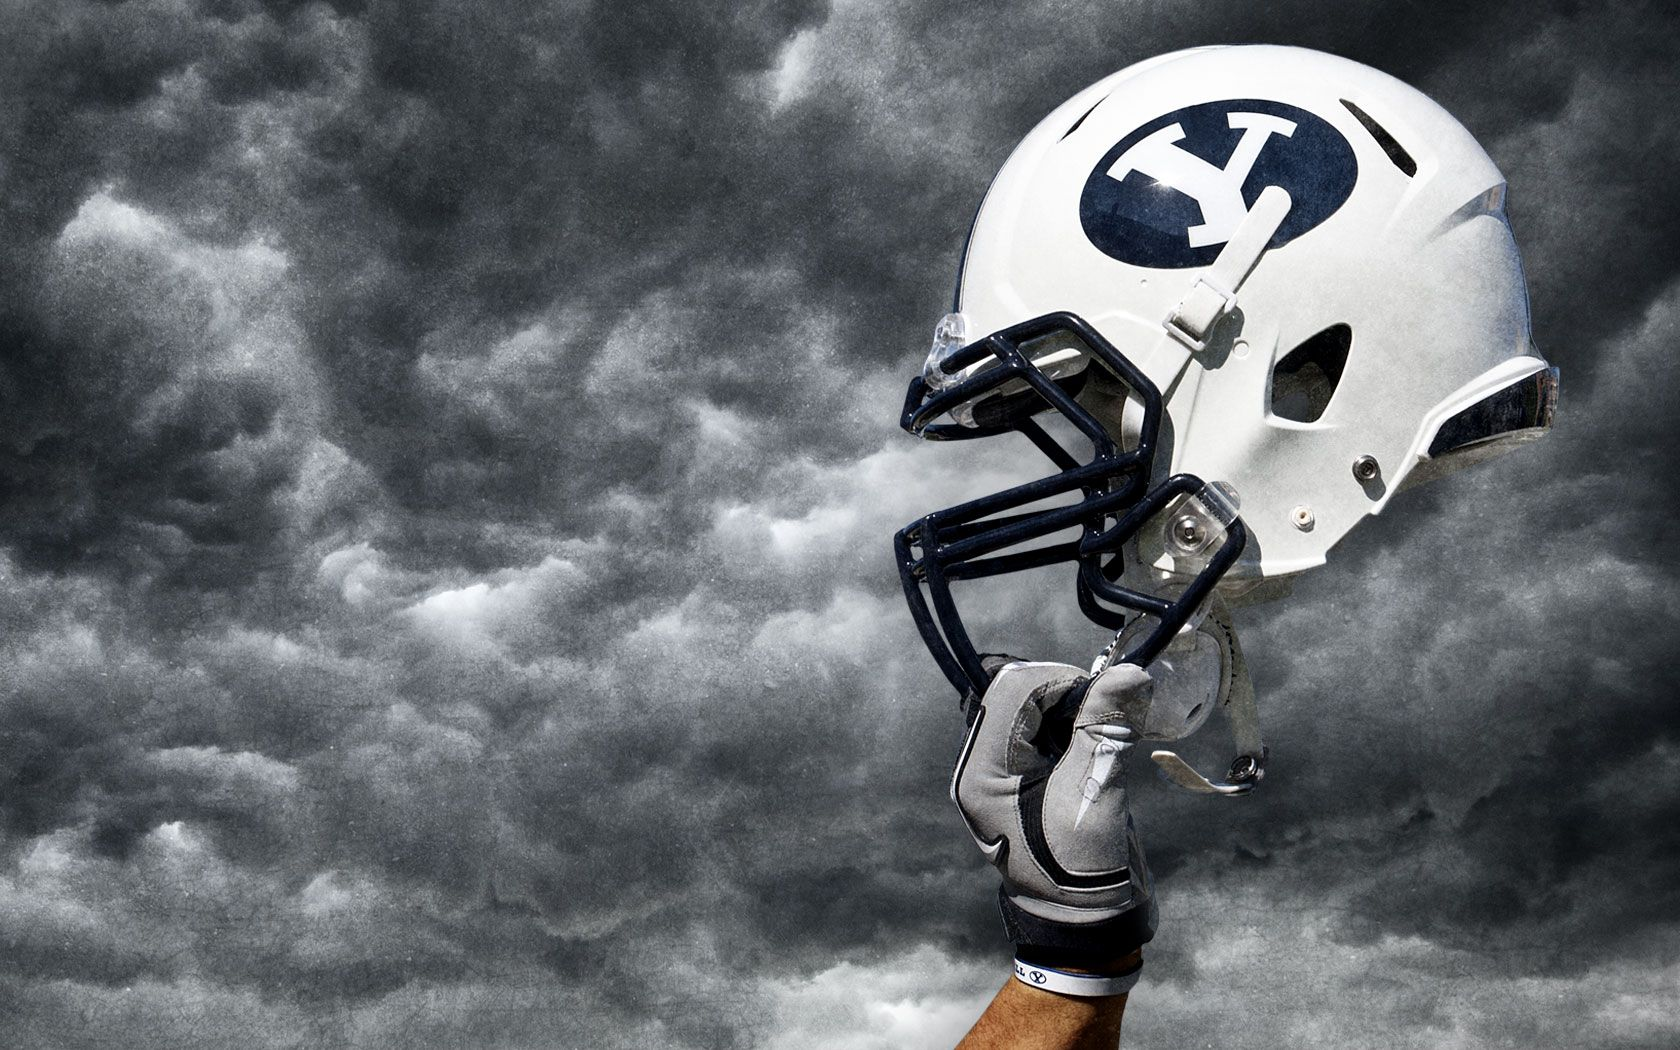 Pin By Byu Store On Sports Byu Football Byu Cougars Byu Sports